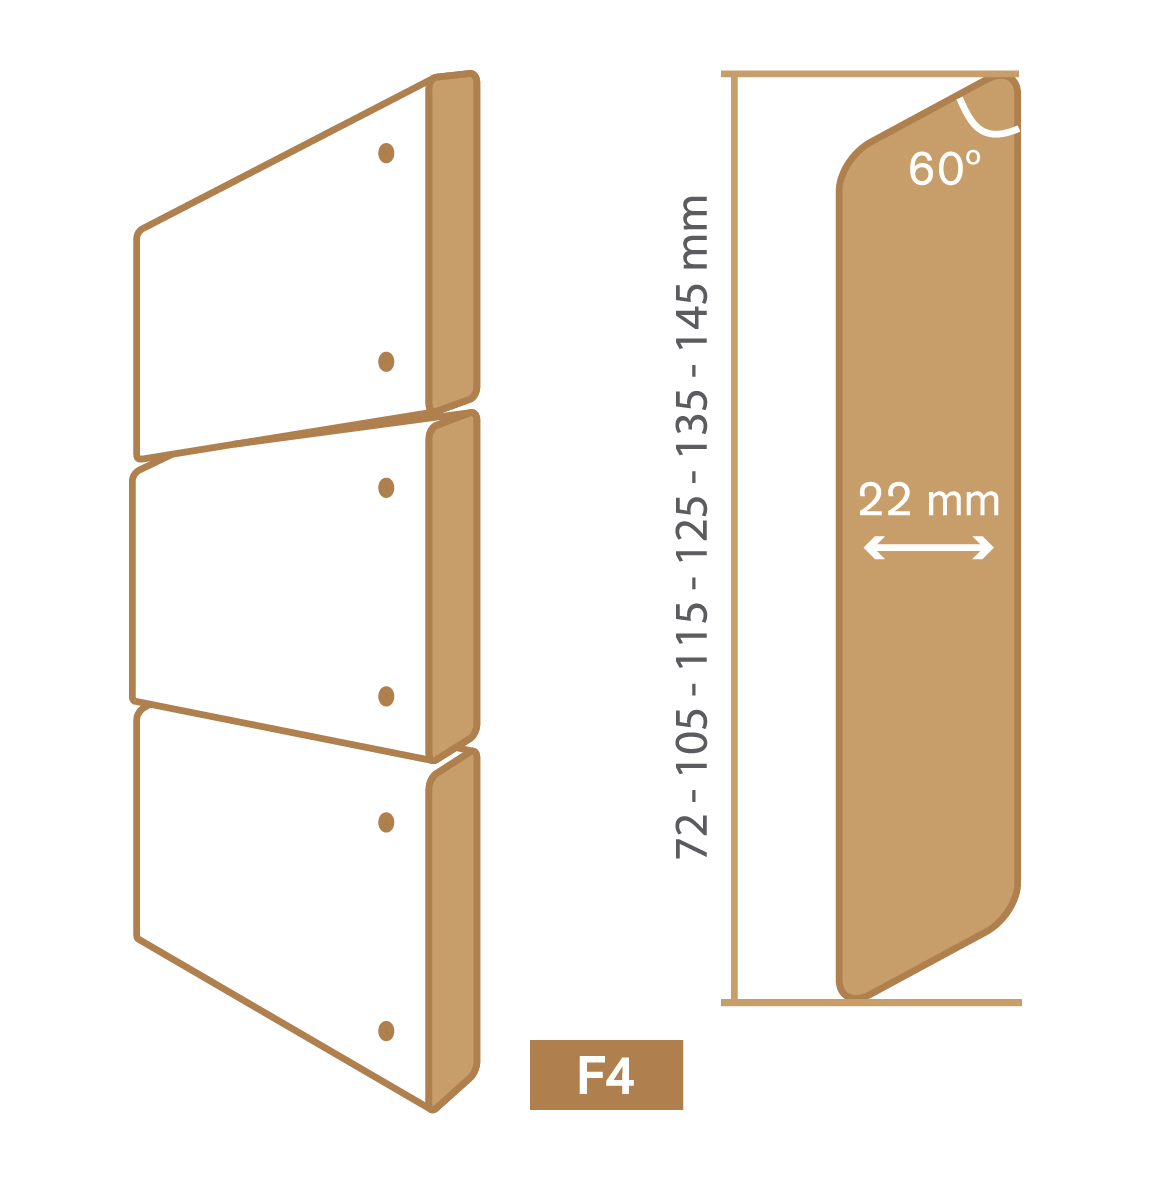 wooden cladding f4 type